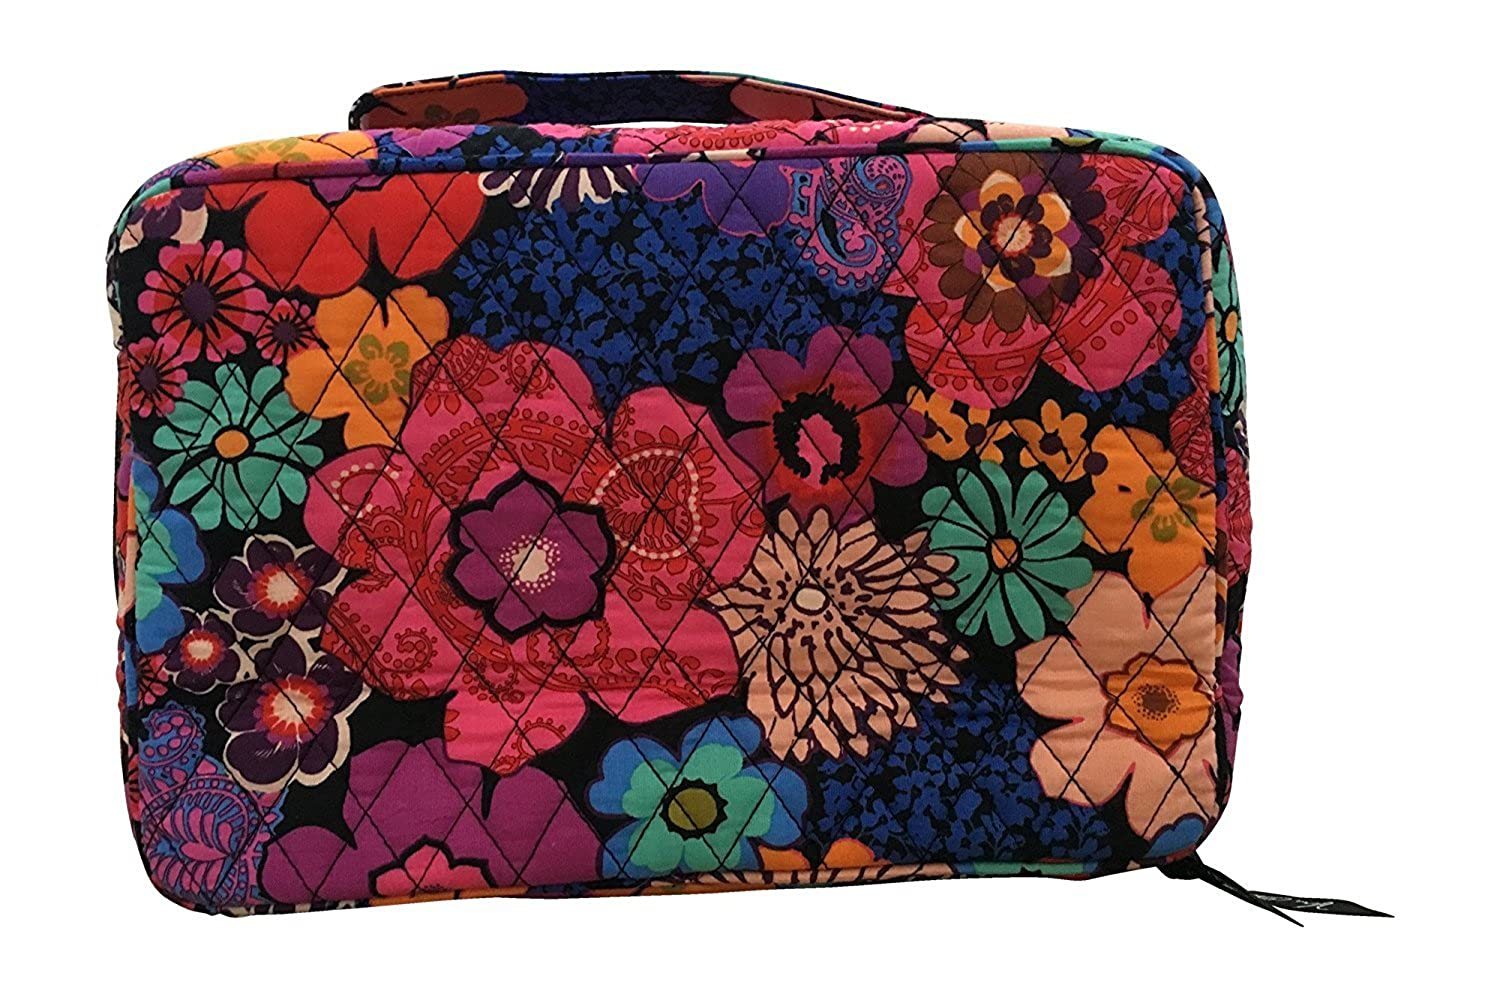 Vera Bradley Blush Brush Makeup Case Floral Fiesta with Solid Black Interior